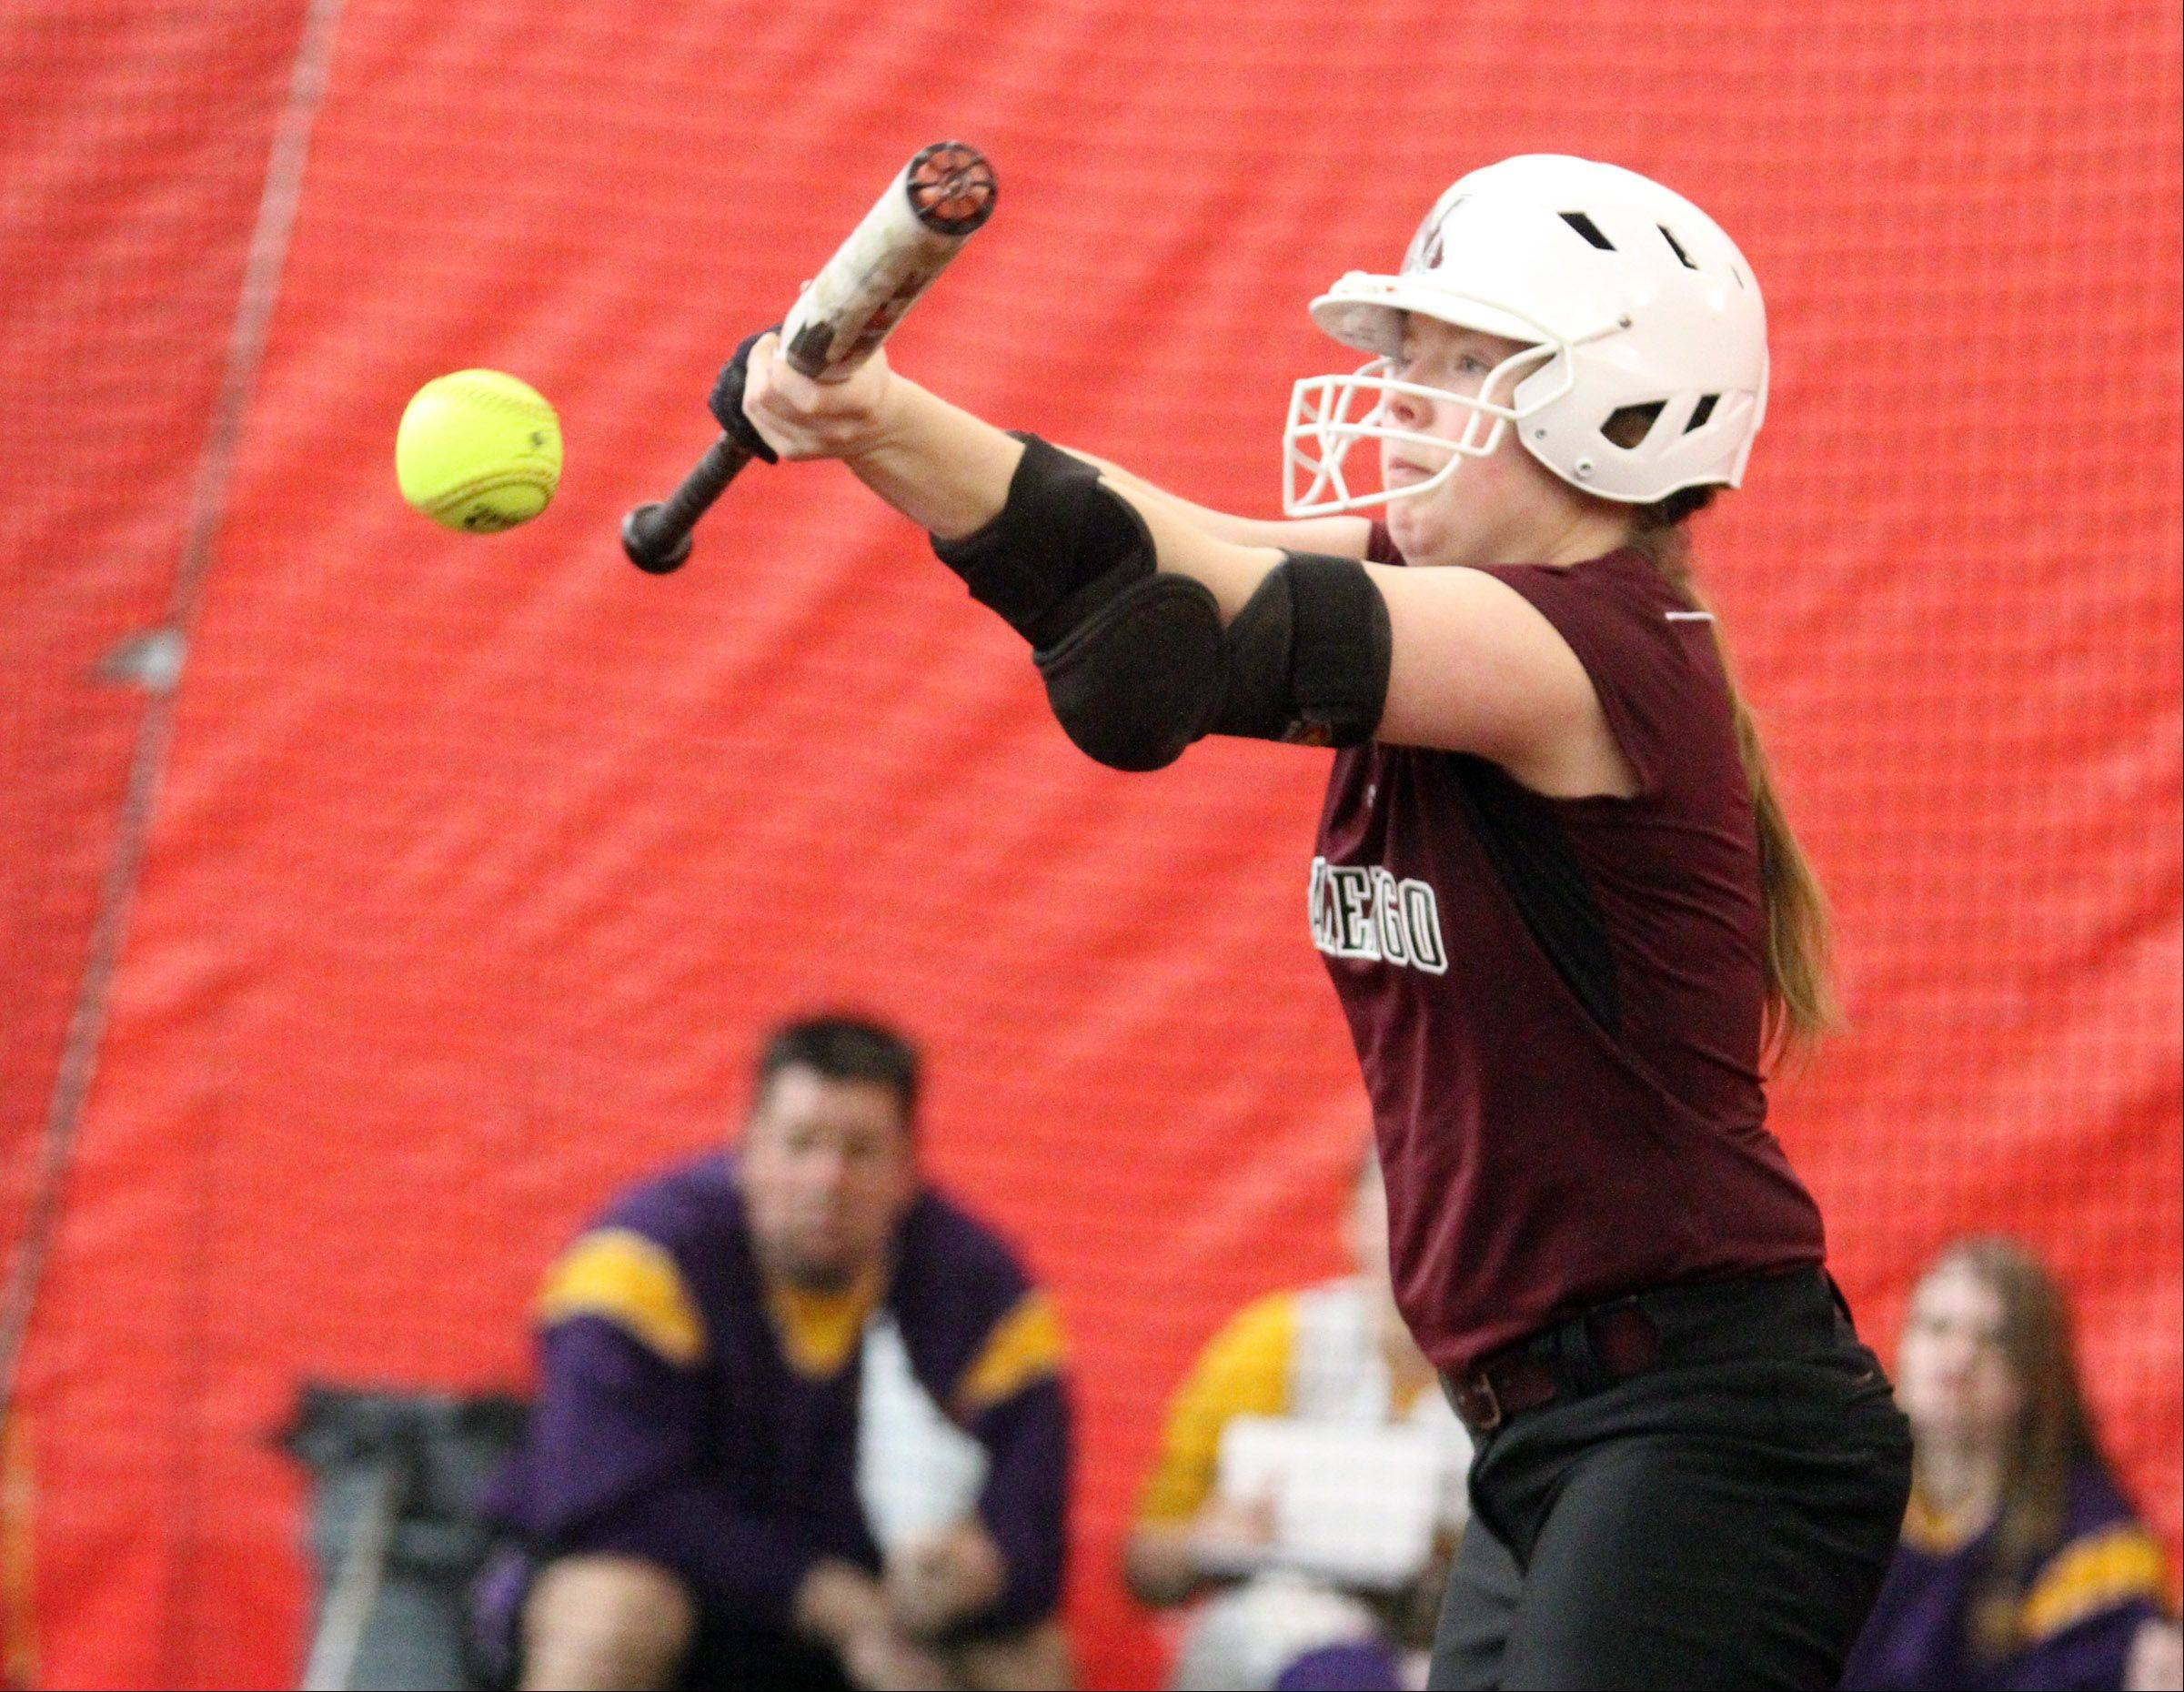 George LeClaire/gleclaire@dailyherald.comMarengo's Abby Kissack bunts the ball against Wauconda pitcher Kayla Wedl at The Dome in Rosemont on Friday, March 22, 2013.